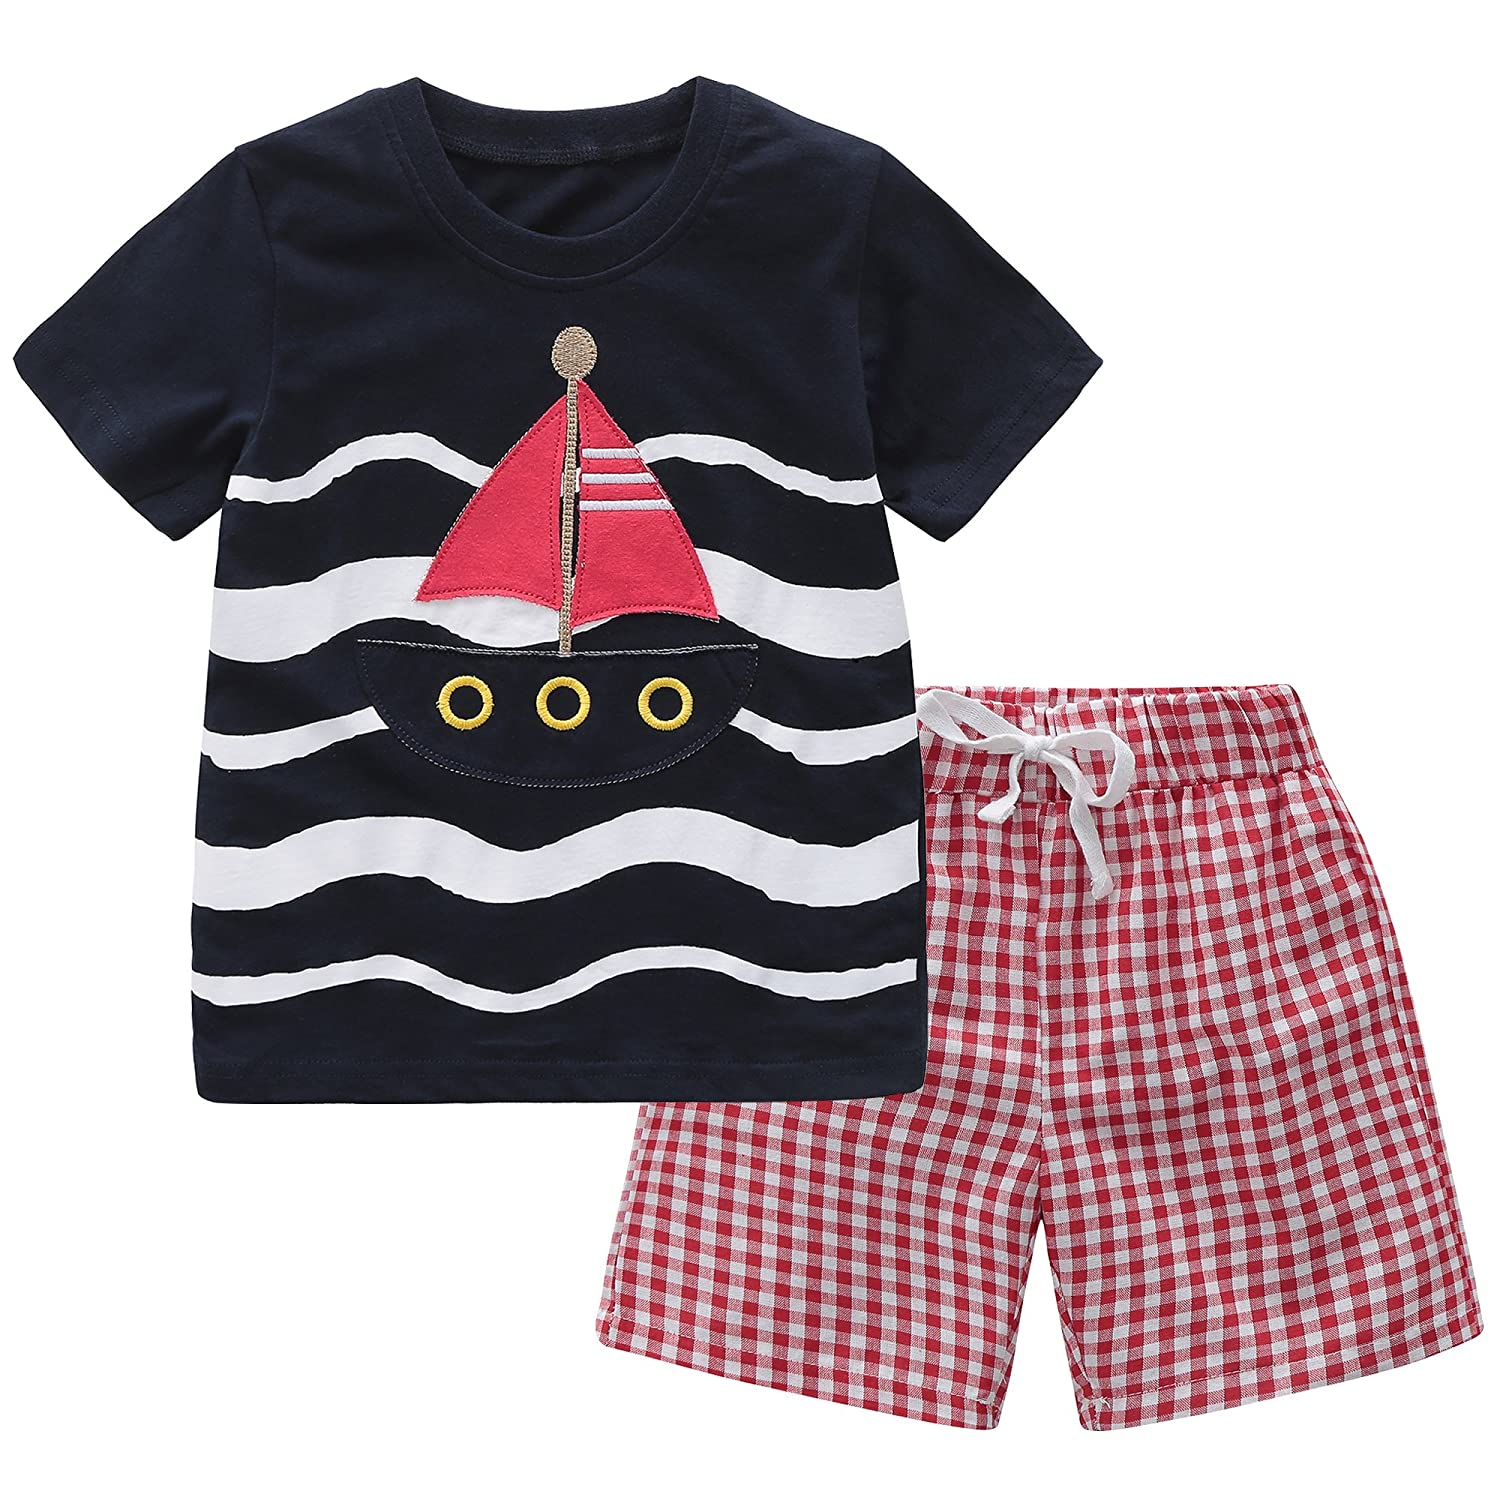 Fiream Baby Boy's Cotton Outfits 2 Pieces Clothing Set TZset087